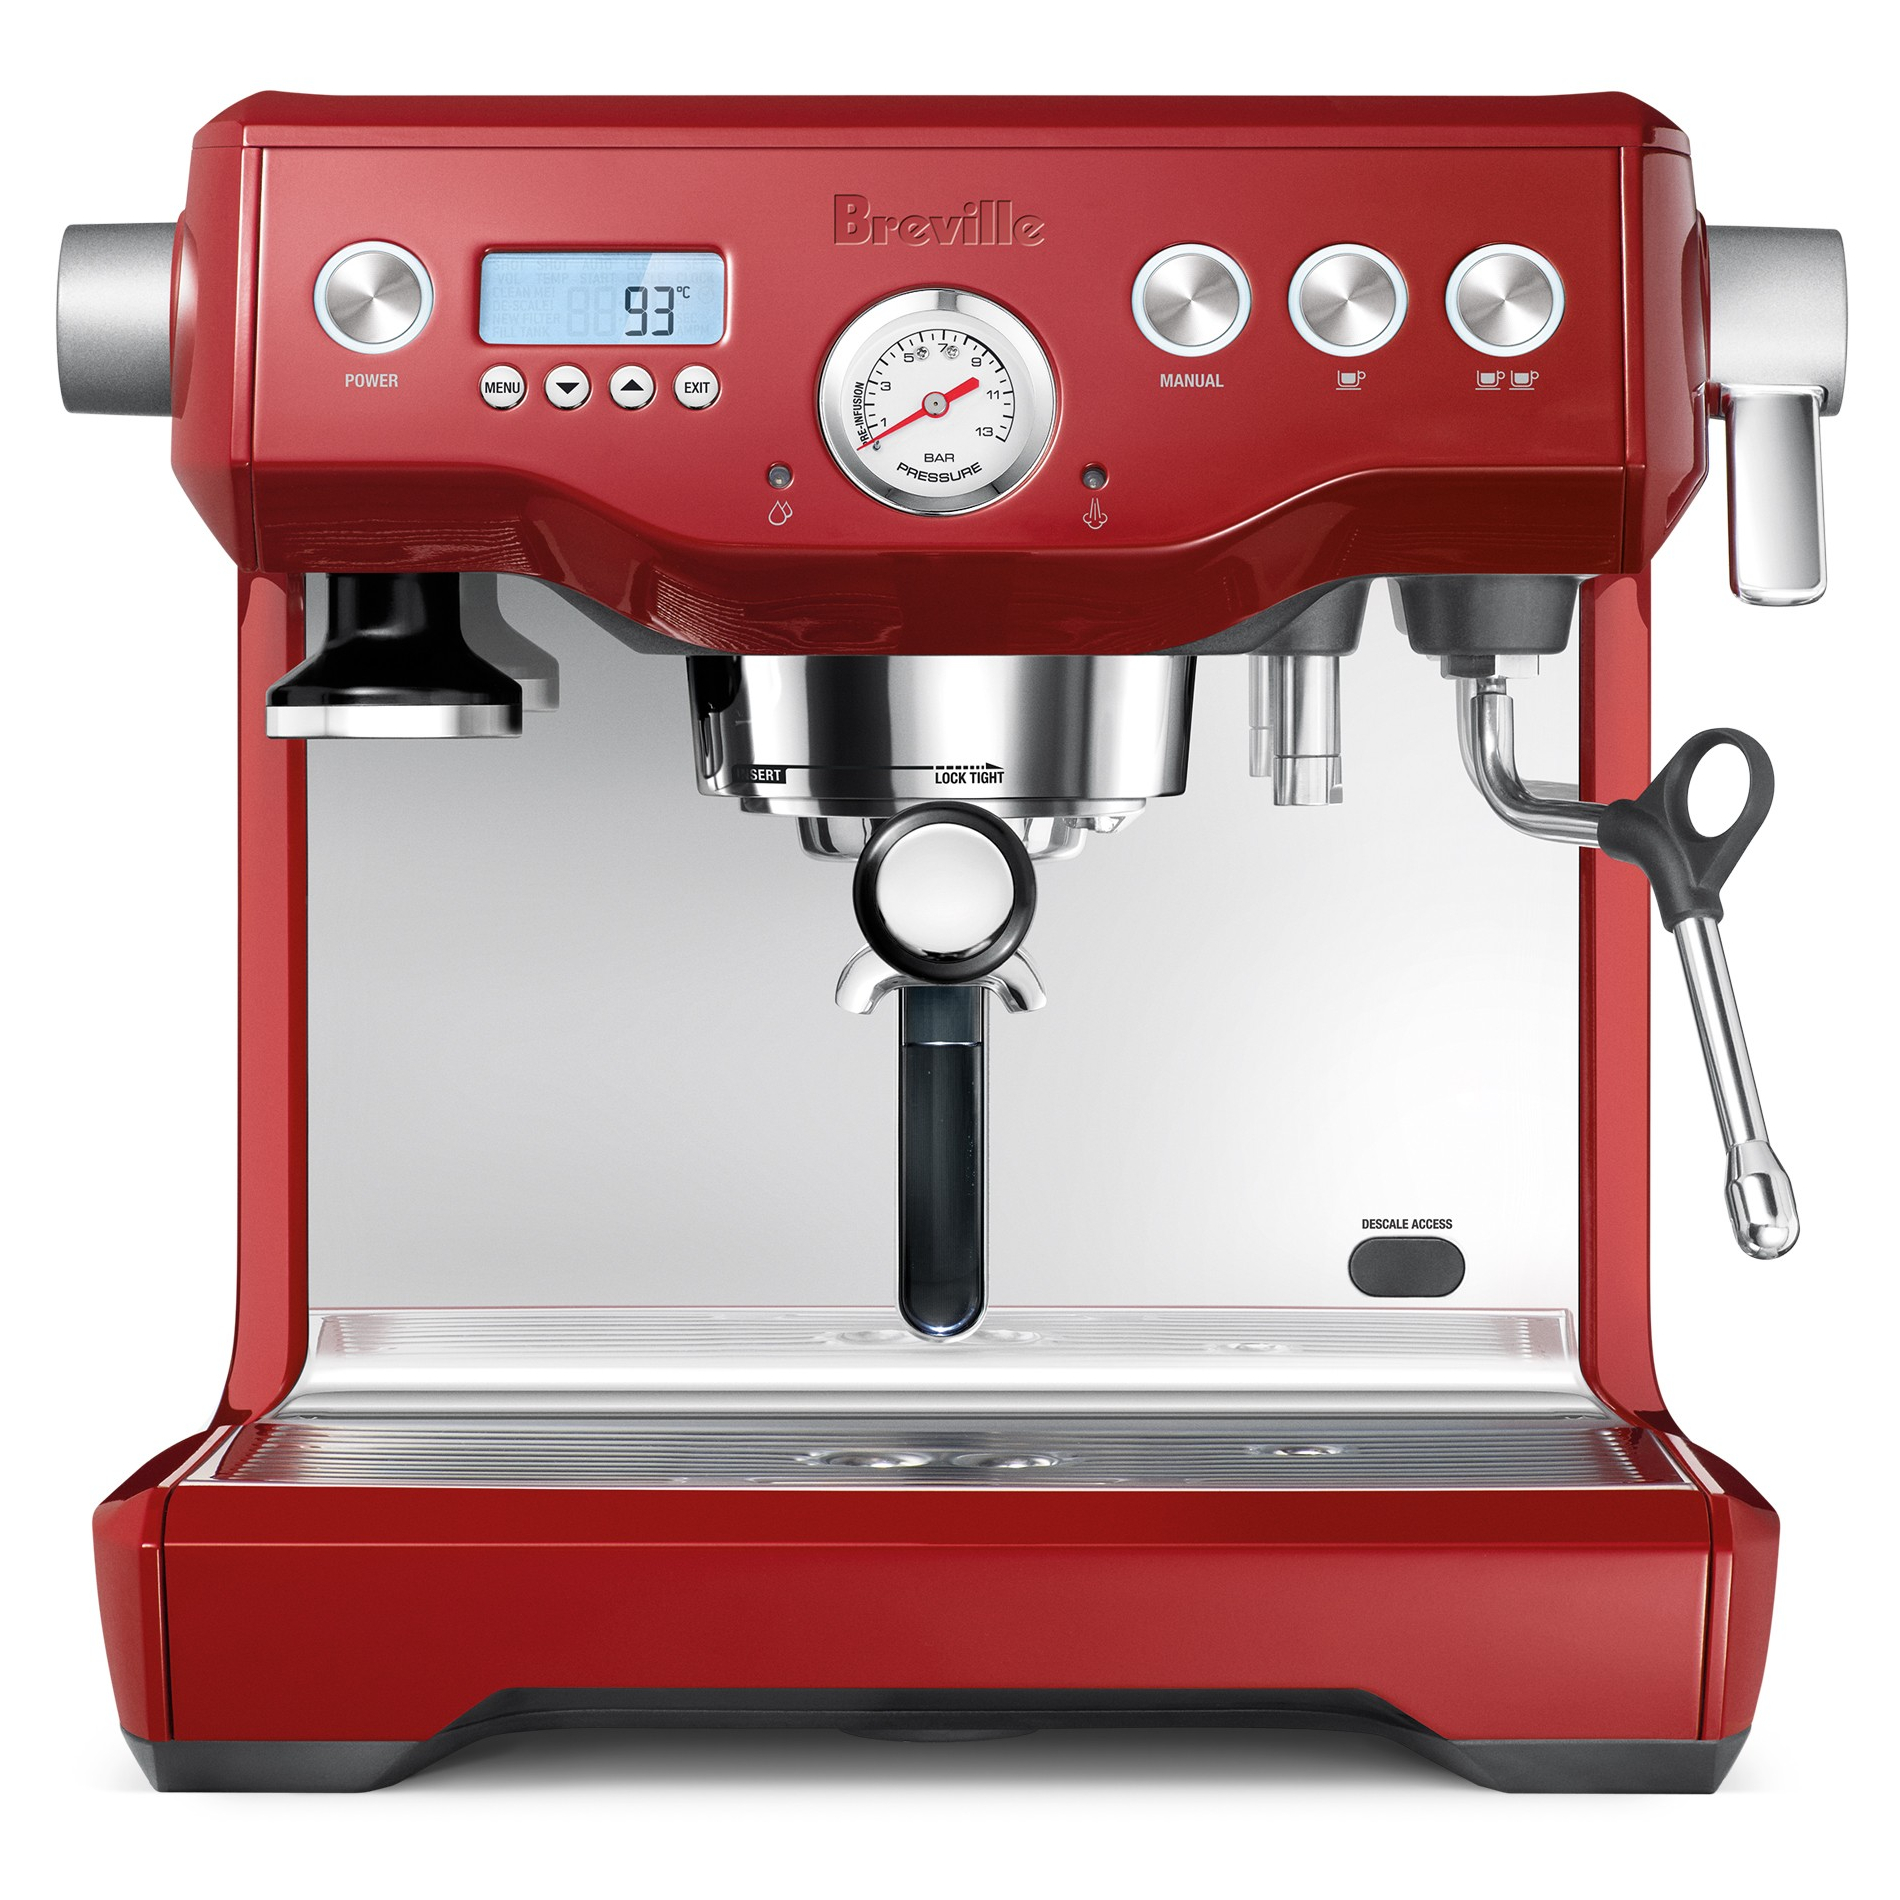 Breville Dual Boiler Cranberry Red Descalable Espresso Machine